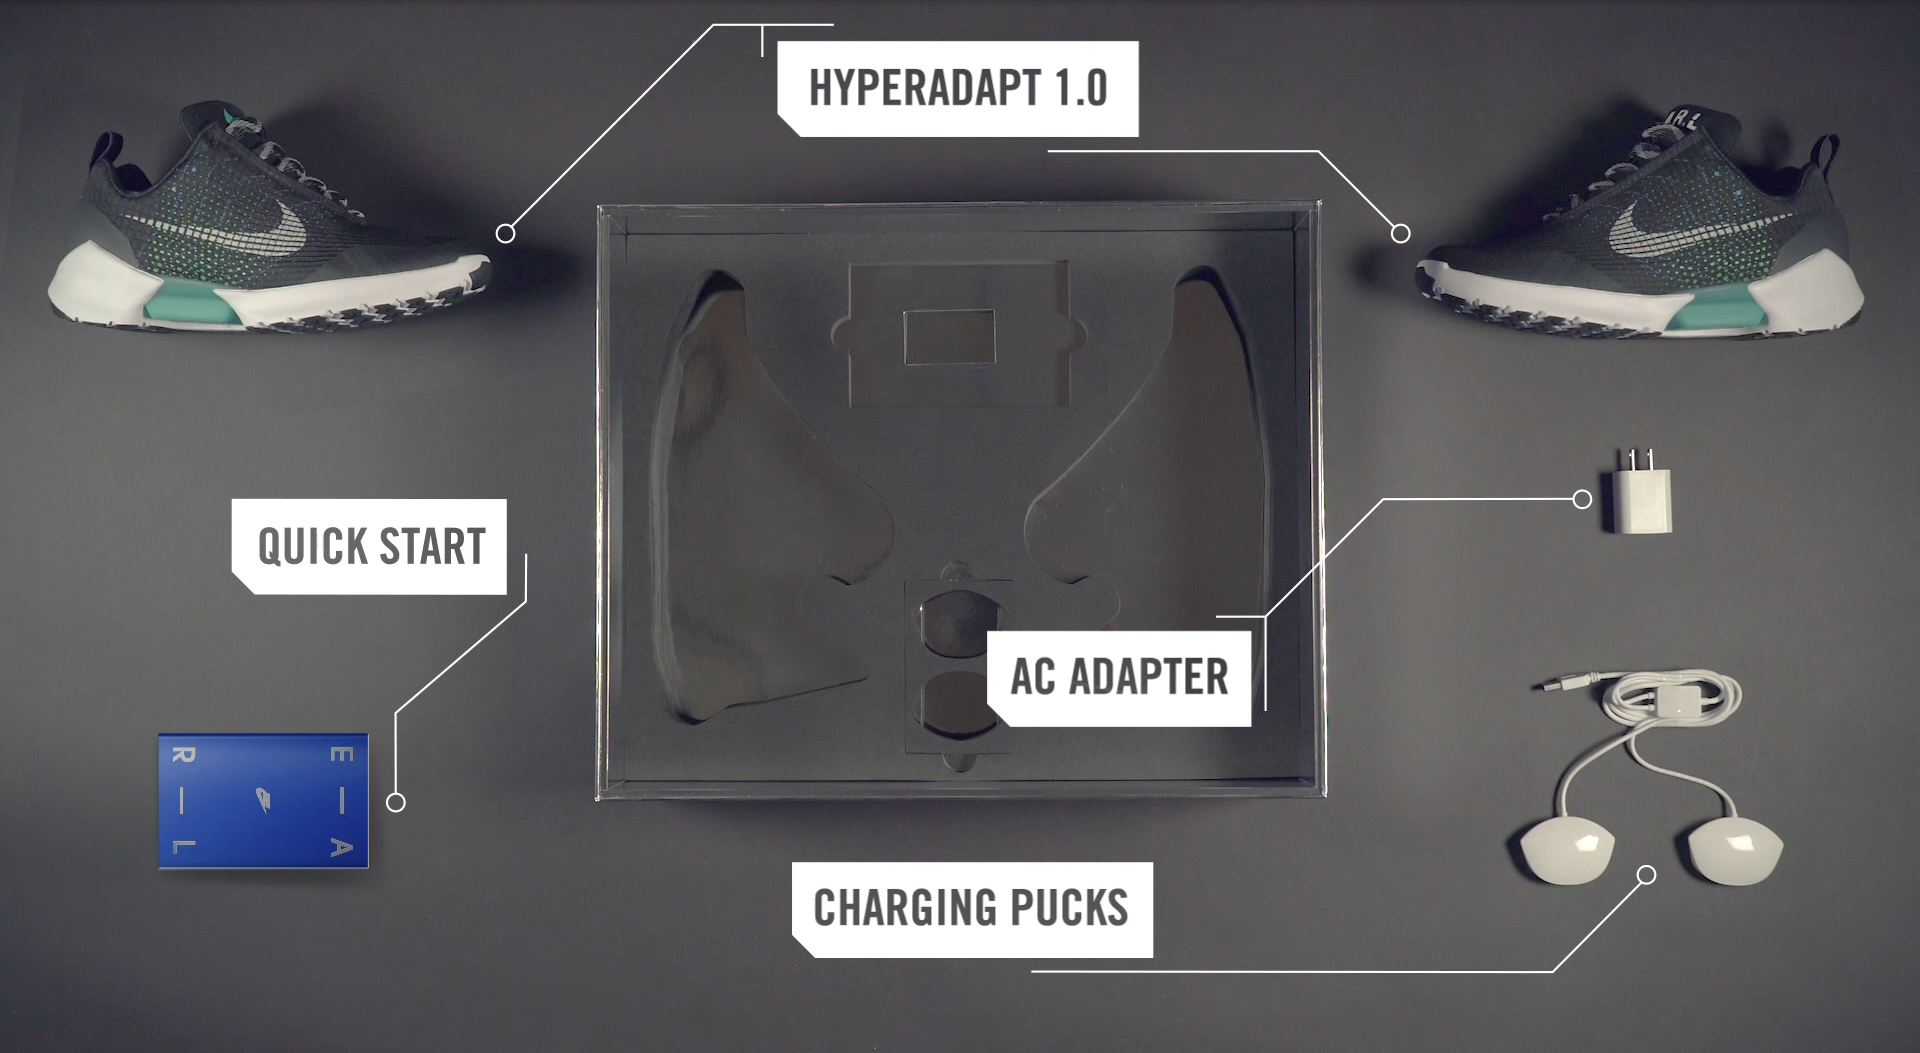 The Nike HyperAdapt 1.0 and its packaging